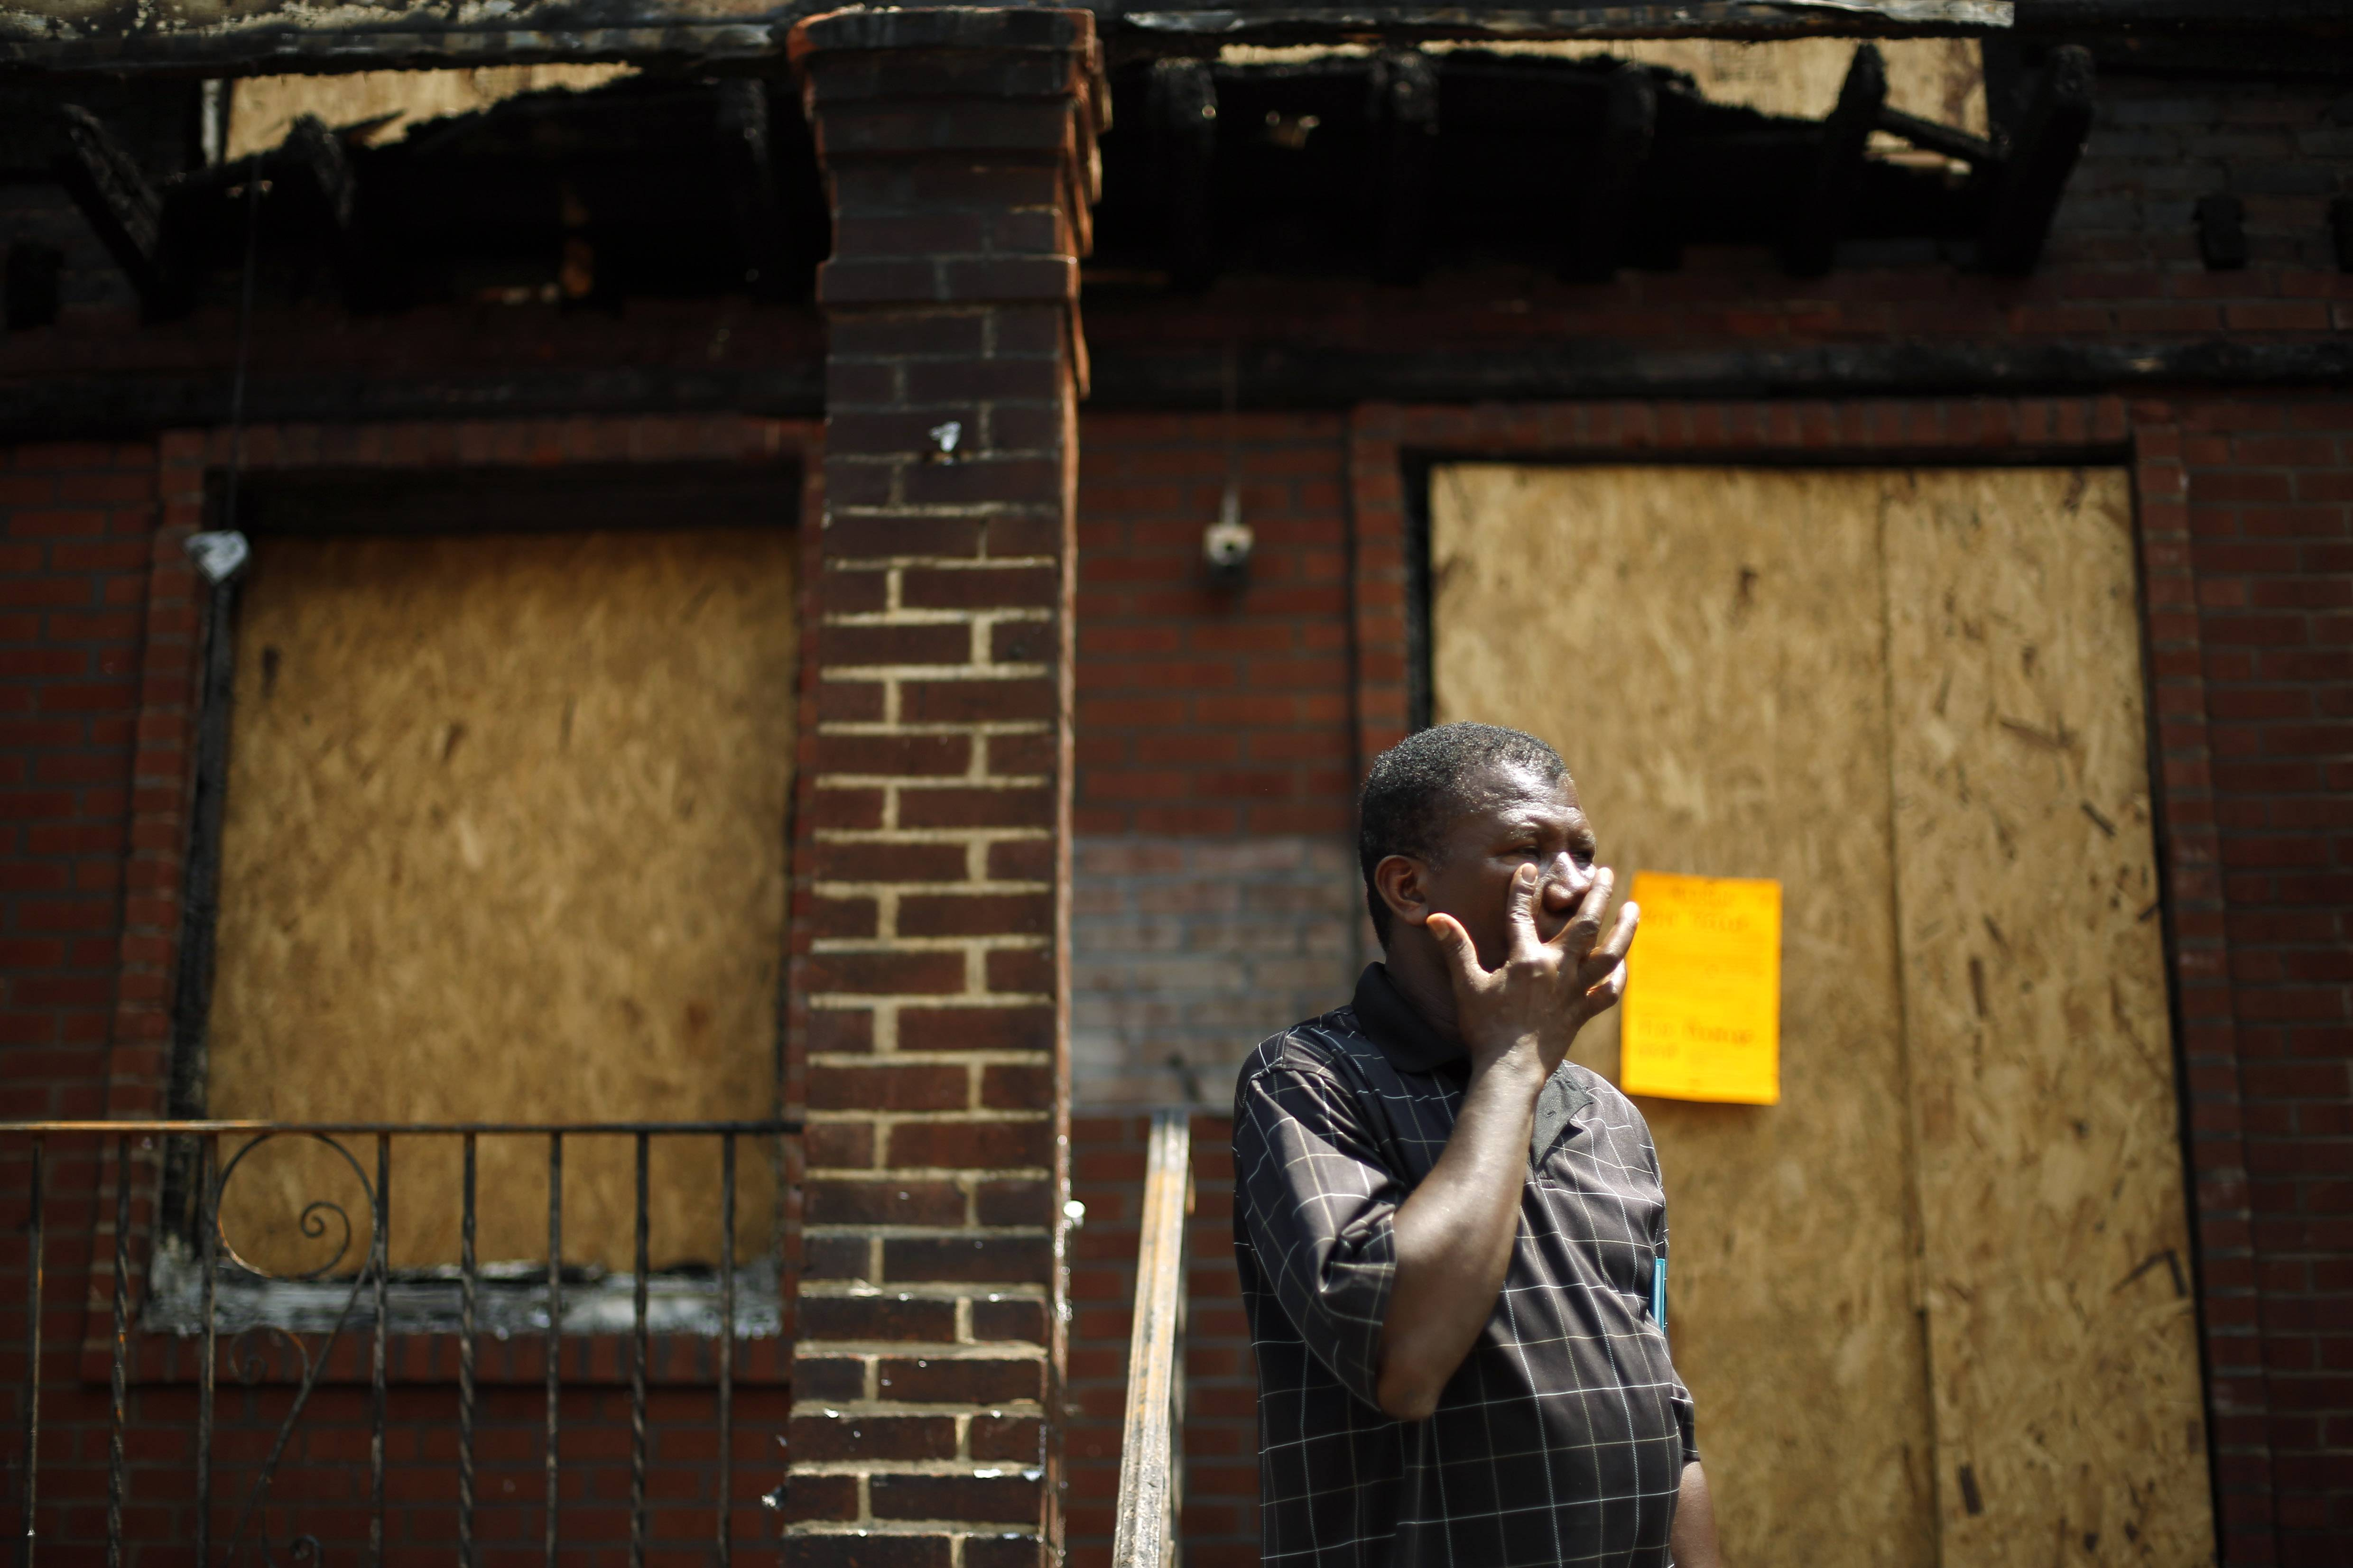 Solomon Johnson wipes his face Tuesday on the steps of his fire-damaged row house in Philadelphia, as a neighbor recounts details from the weekend fire where four young children died in a fast-moving blaze that engulfed at least 10 residences. Johnson lived next door to the children.